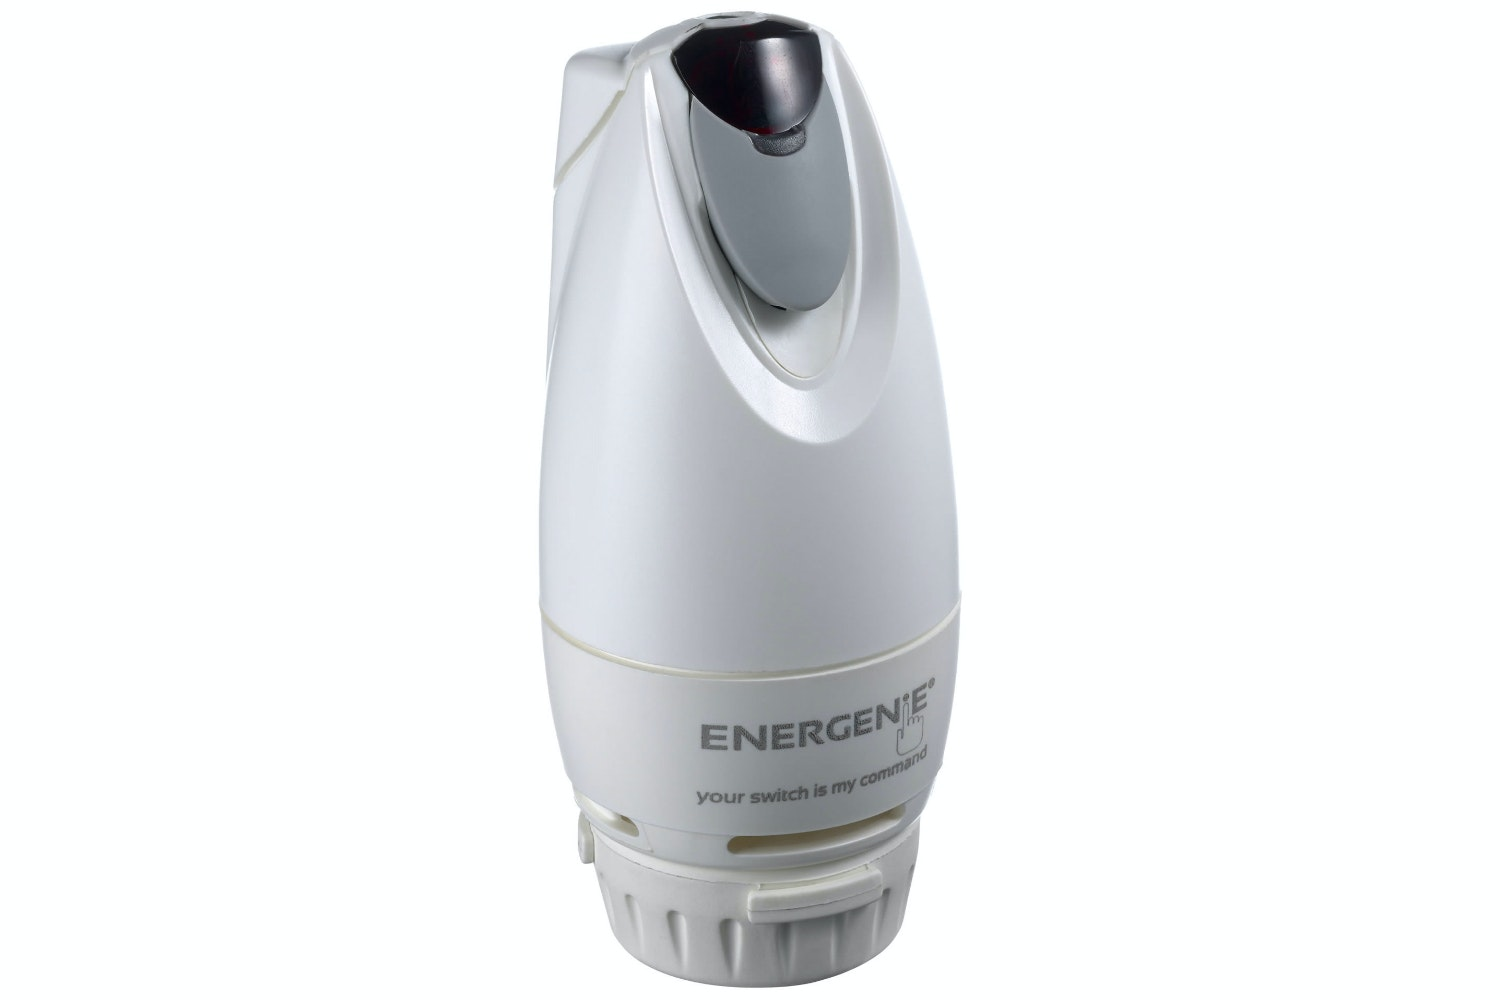 Energenie Mi Home Heating Pack